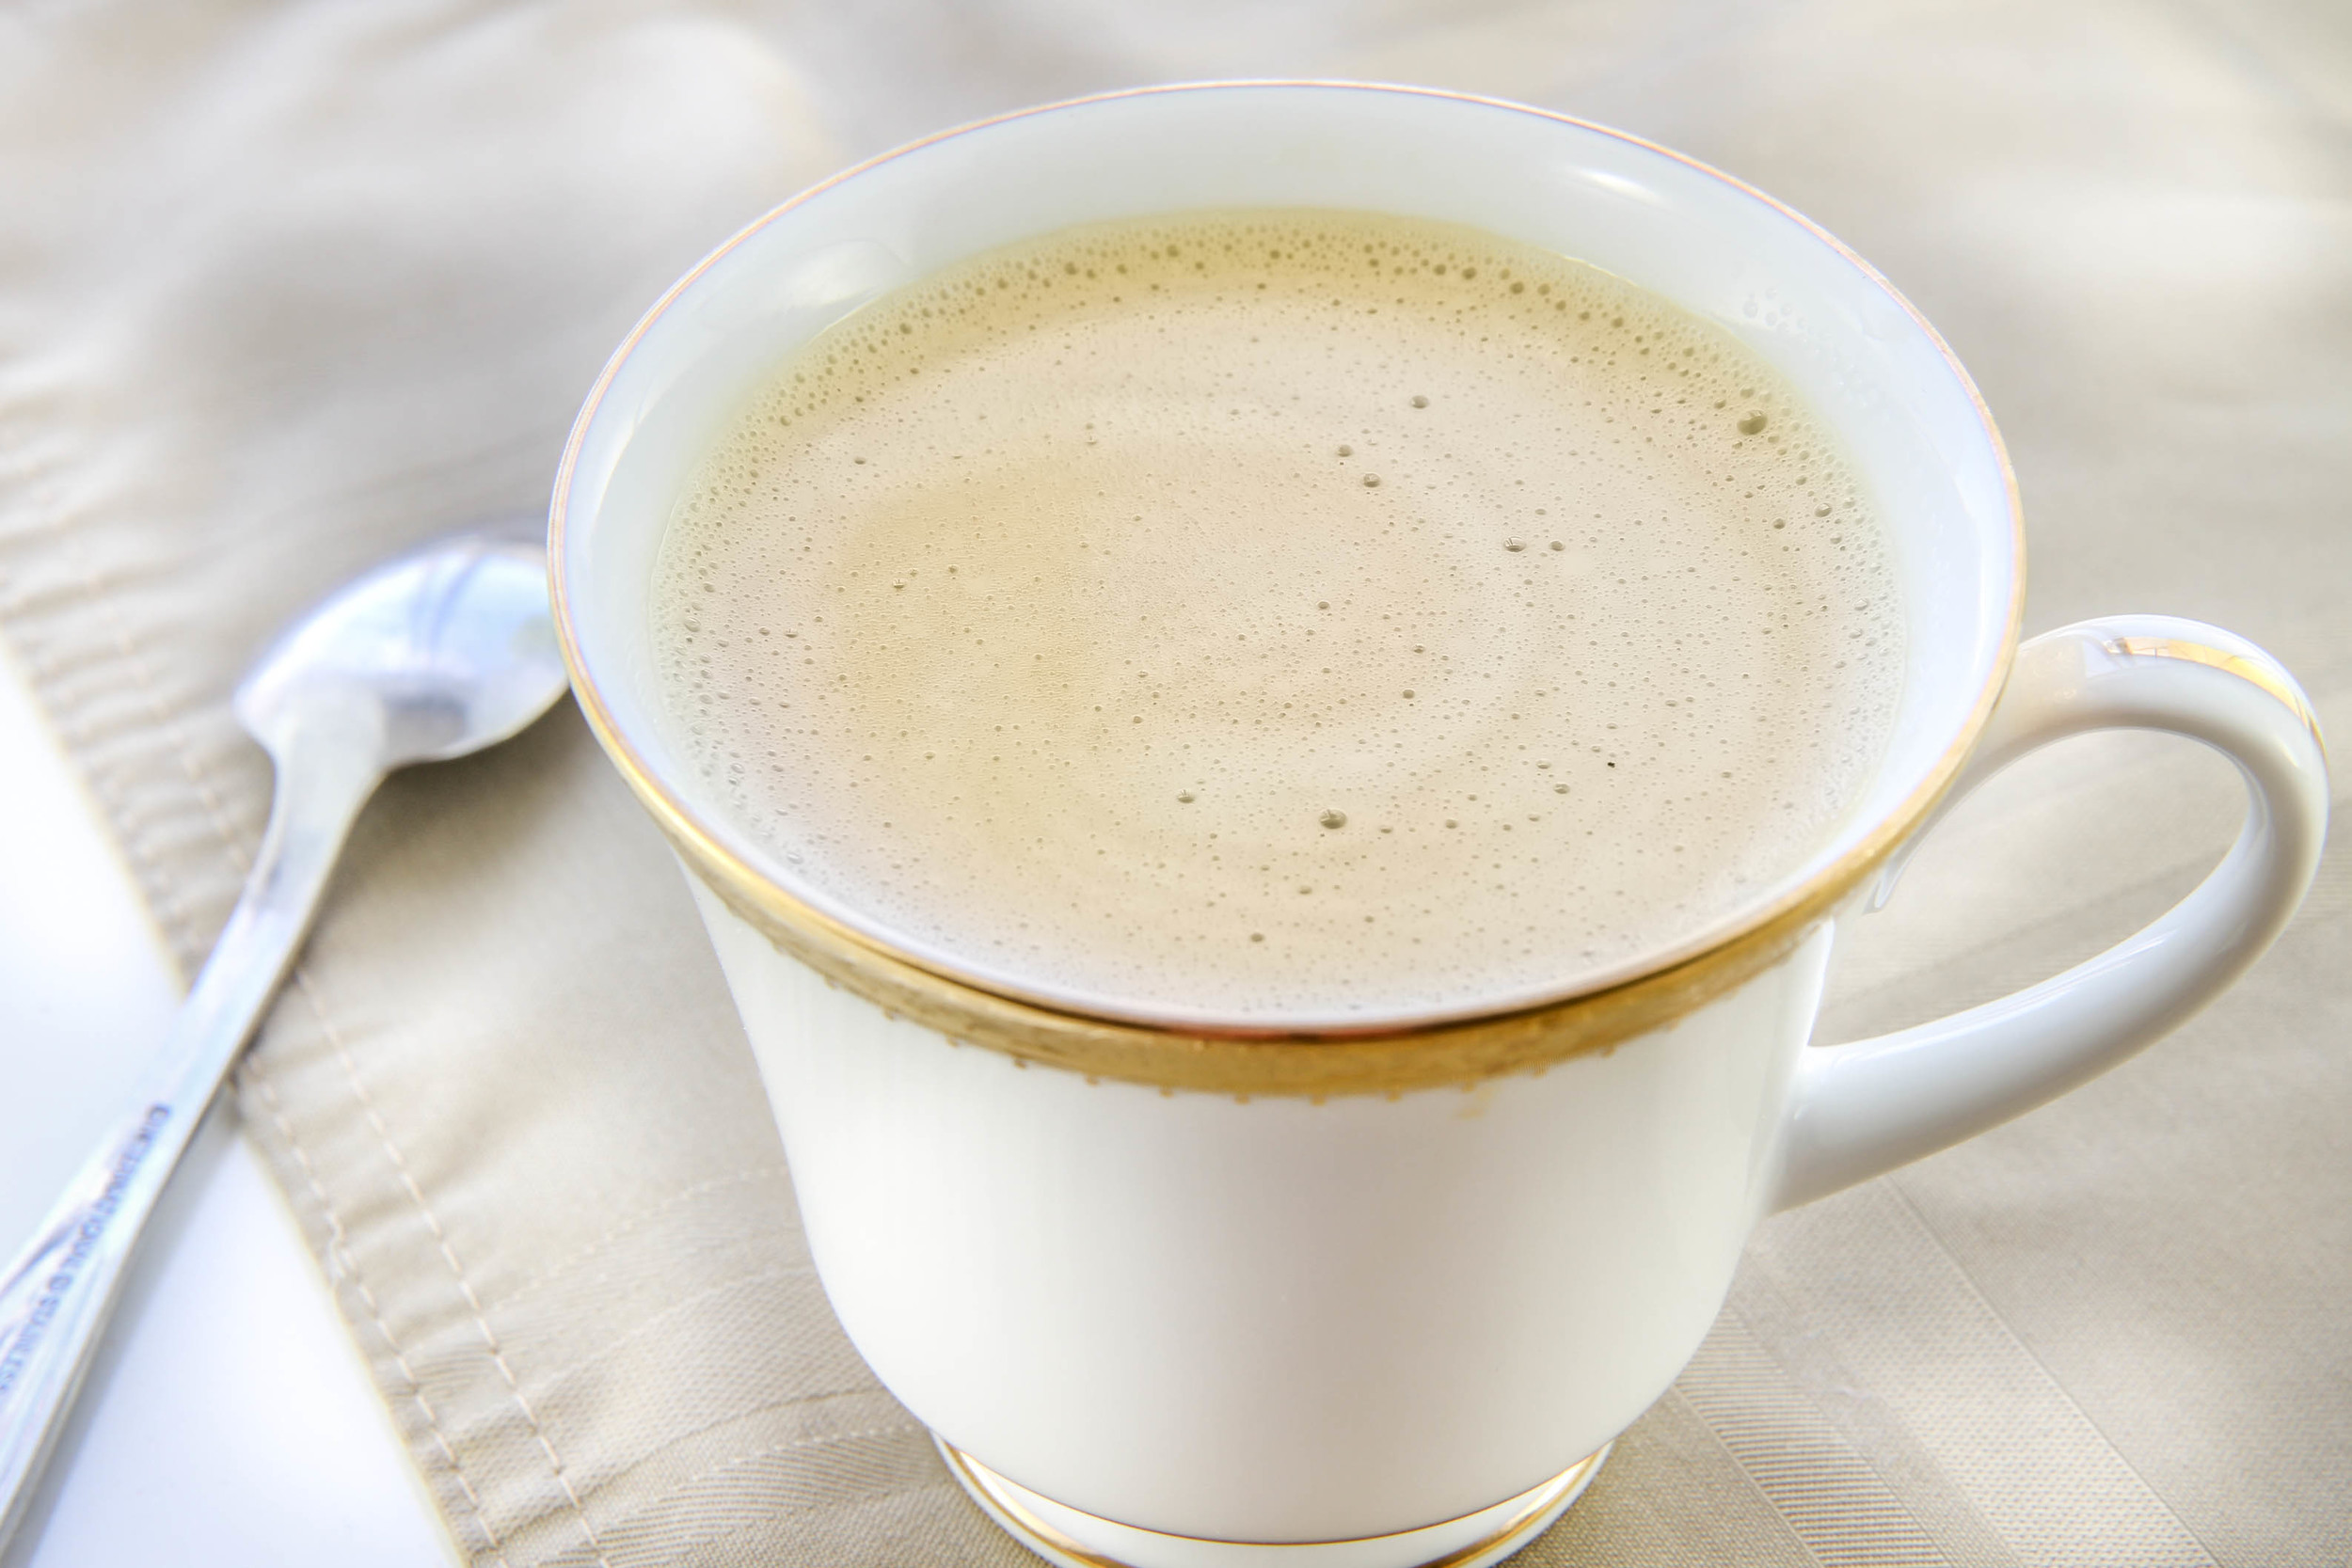 Vietnamese Egg Coffee  (Ca Phe Trung  or  Cafe Trung)